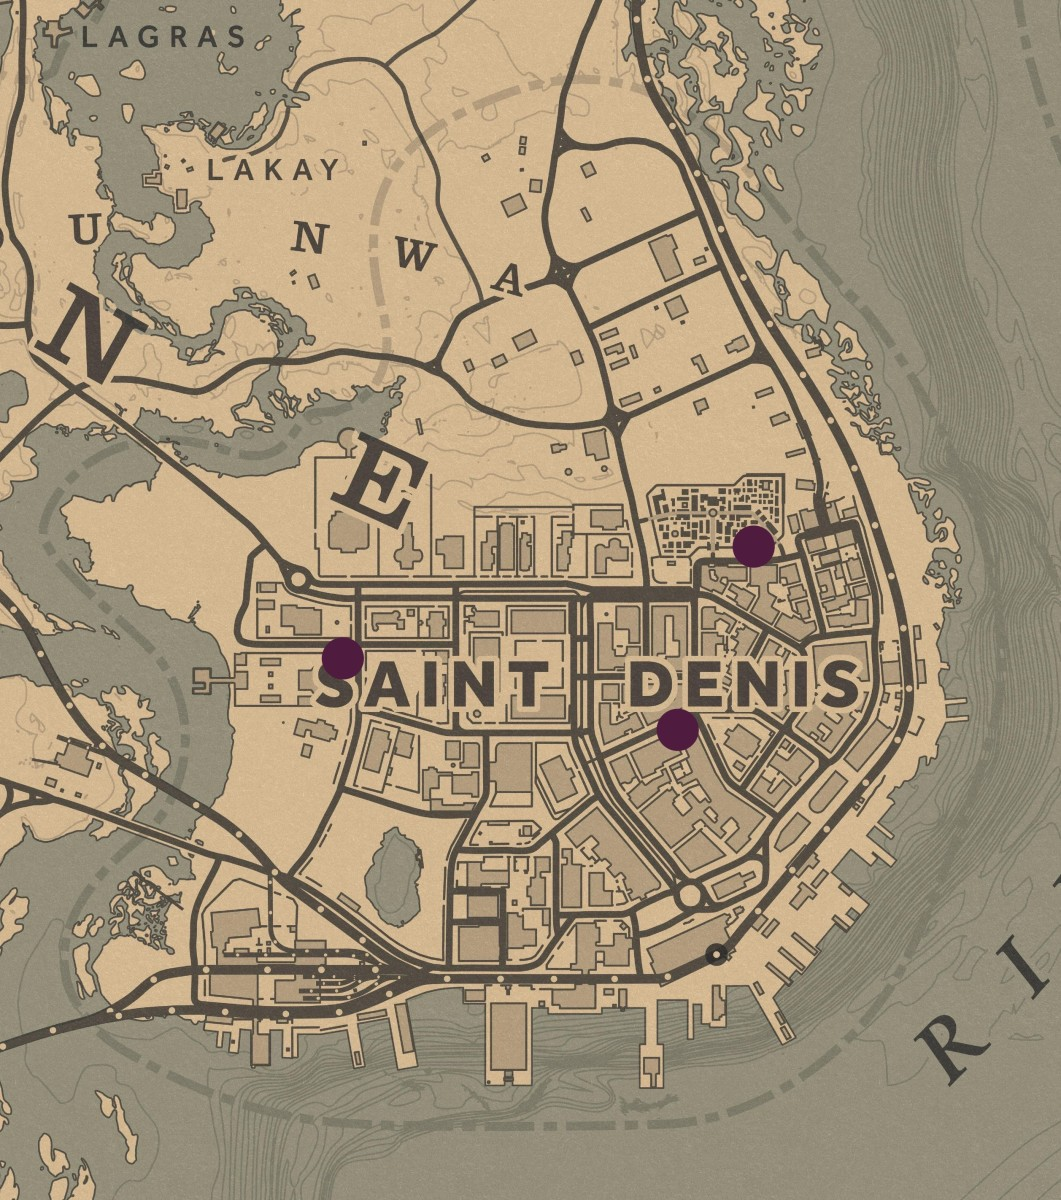 These three Rescues in Saint Denis occur at night. They are also the most likely to occur if you're having trouble finding one.